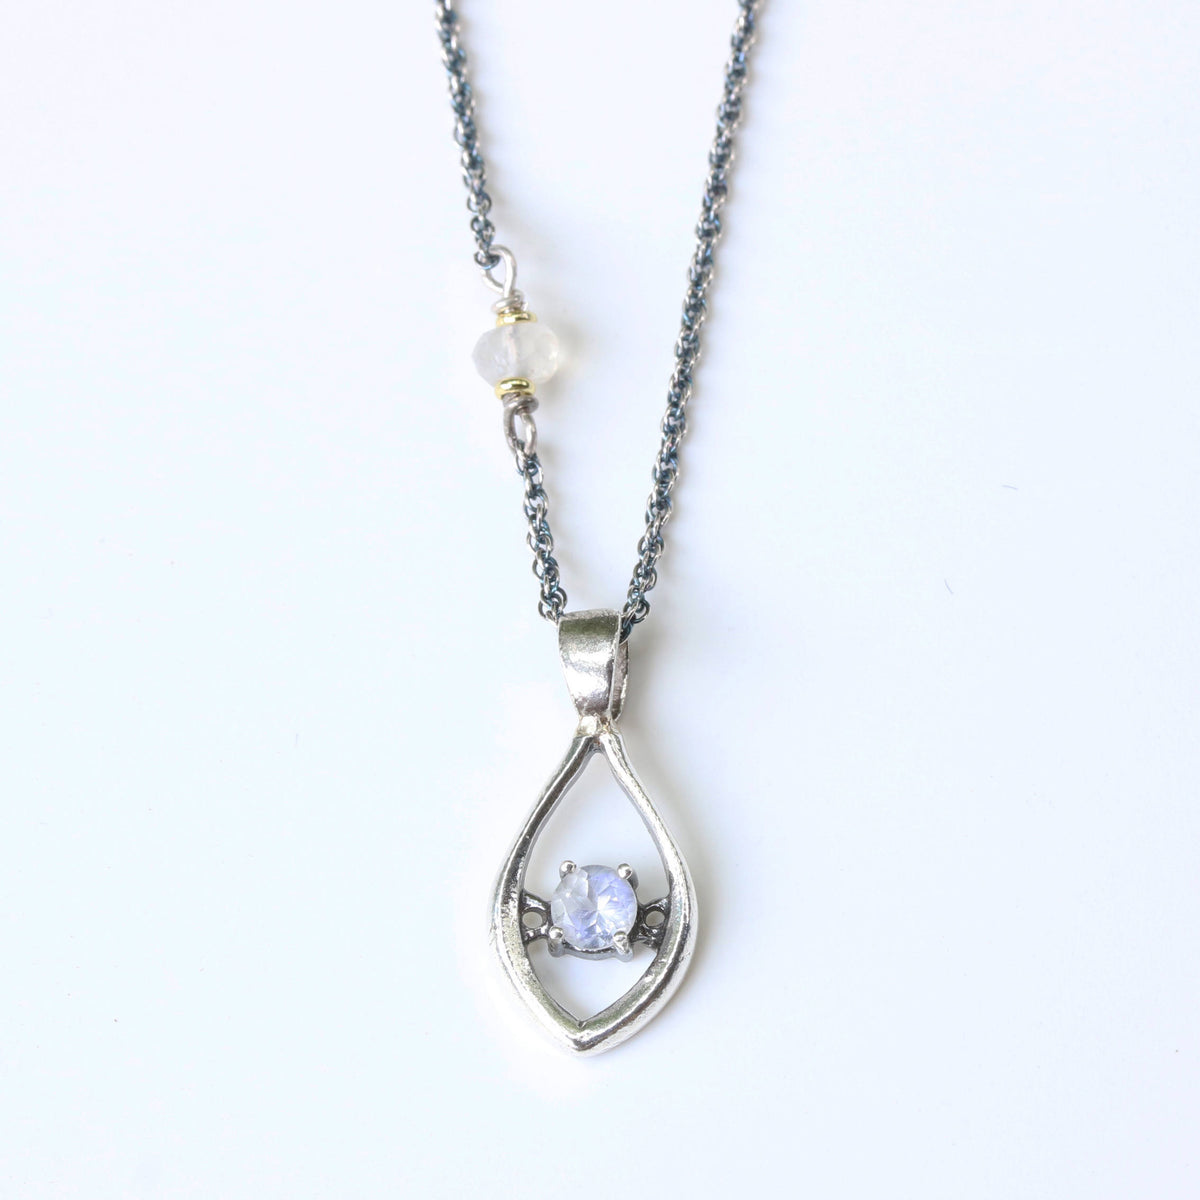 Silver leaf shape necklace and round faceted moonstone at the center with moonstone beads secondary on oxidized sterling silver chain